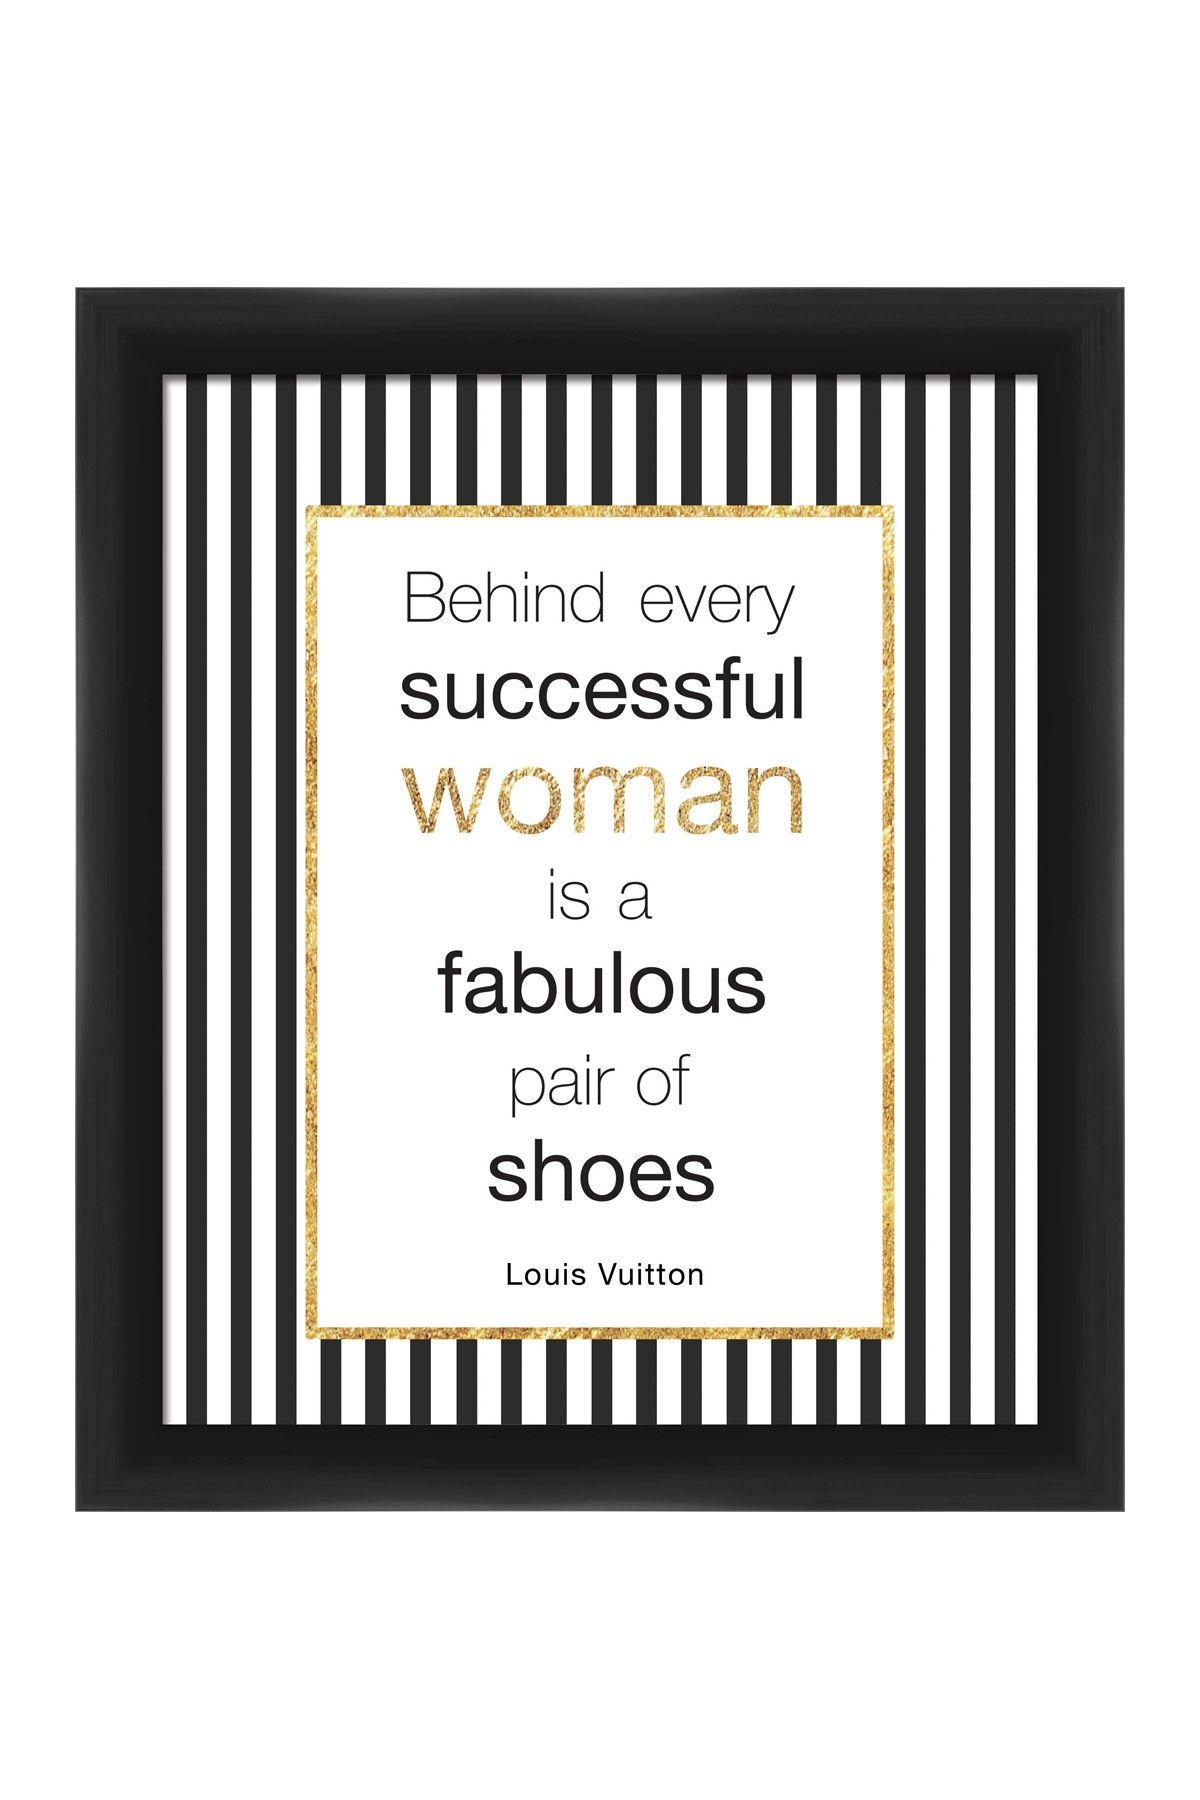 On Hautelook Behind Every Successful Woman Framed Giclee Wall Art Wall Art Quotes Wall Quotes Design Quotes